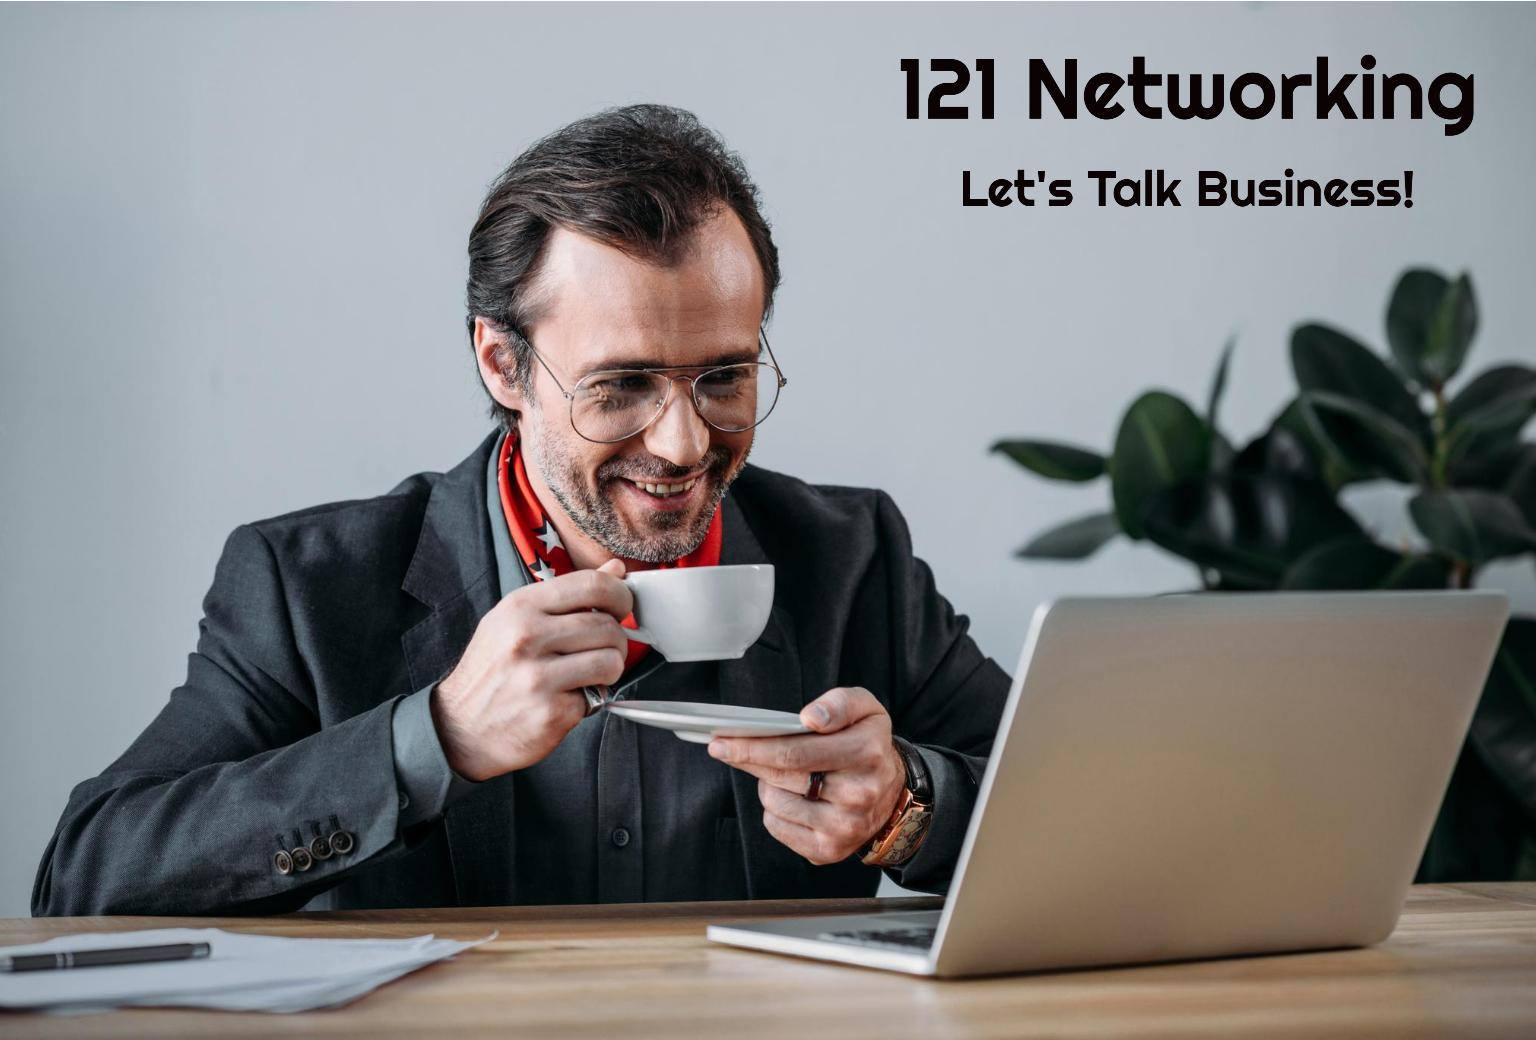 121 networking